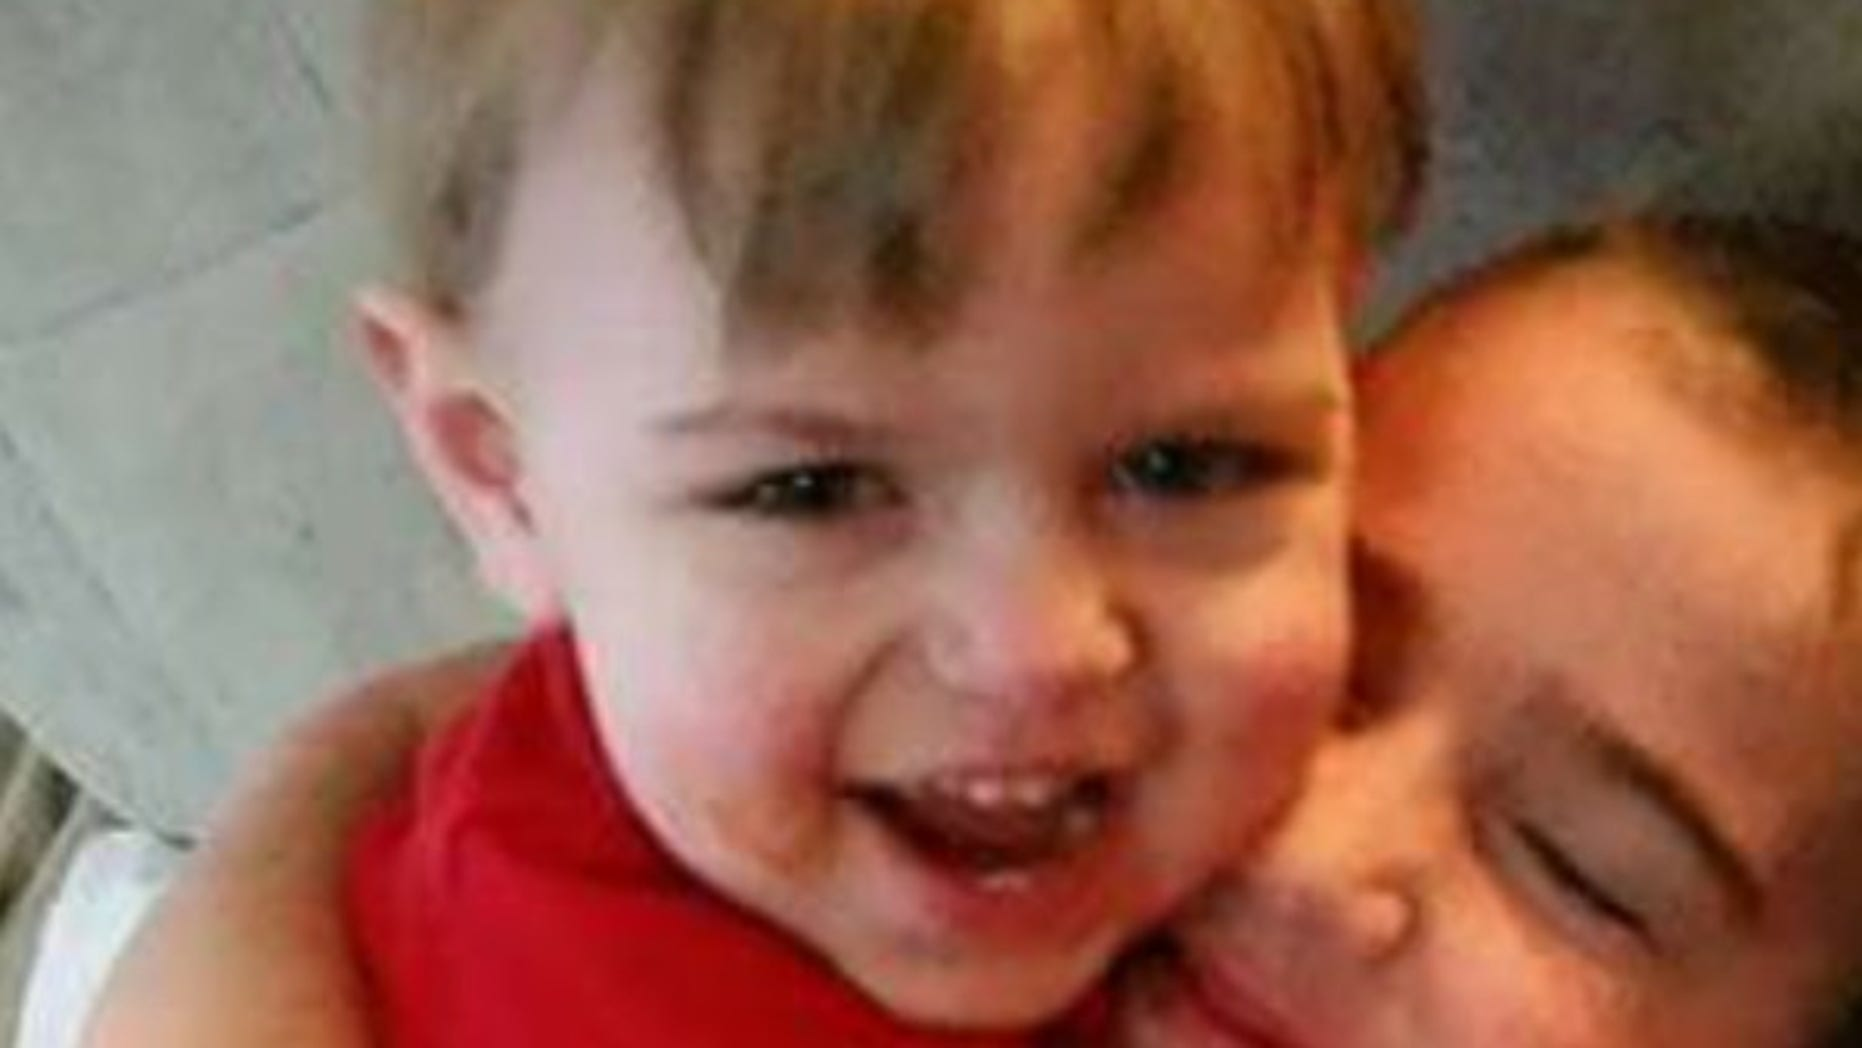 Leonardo Sanchez died while at day care.